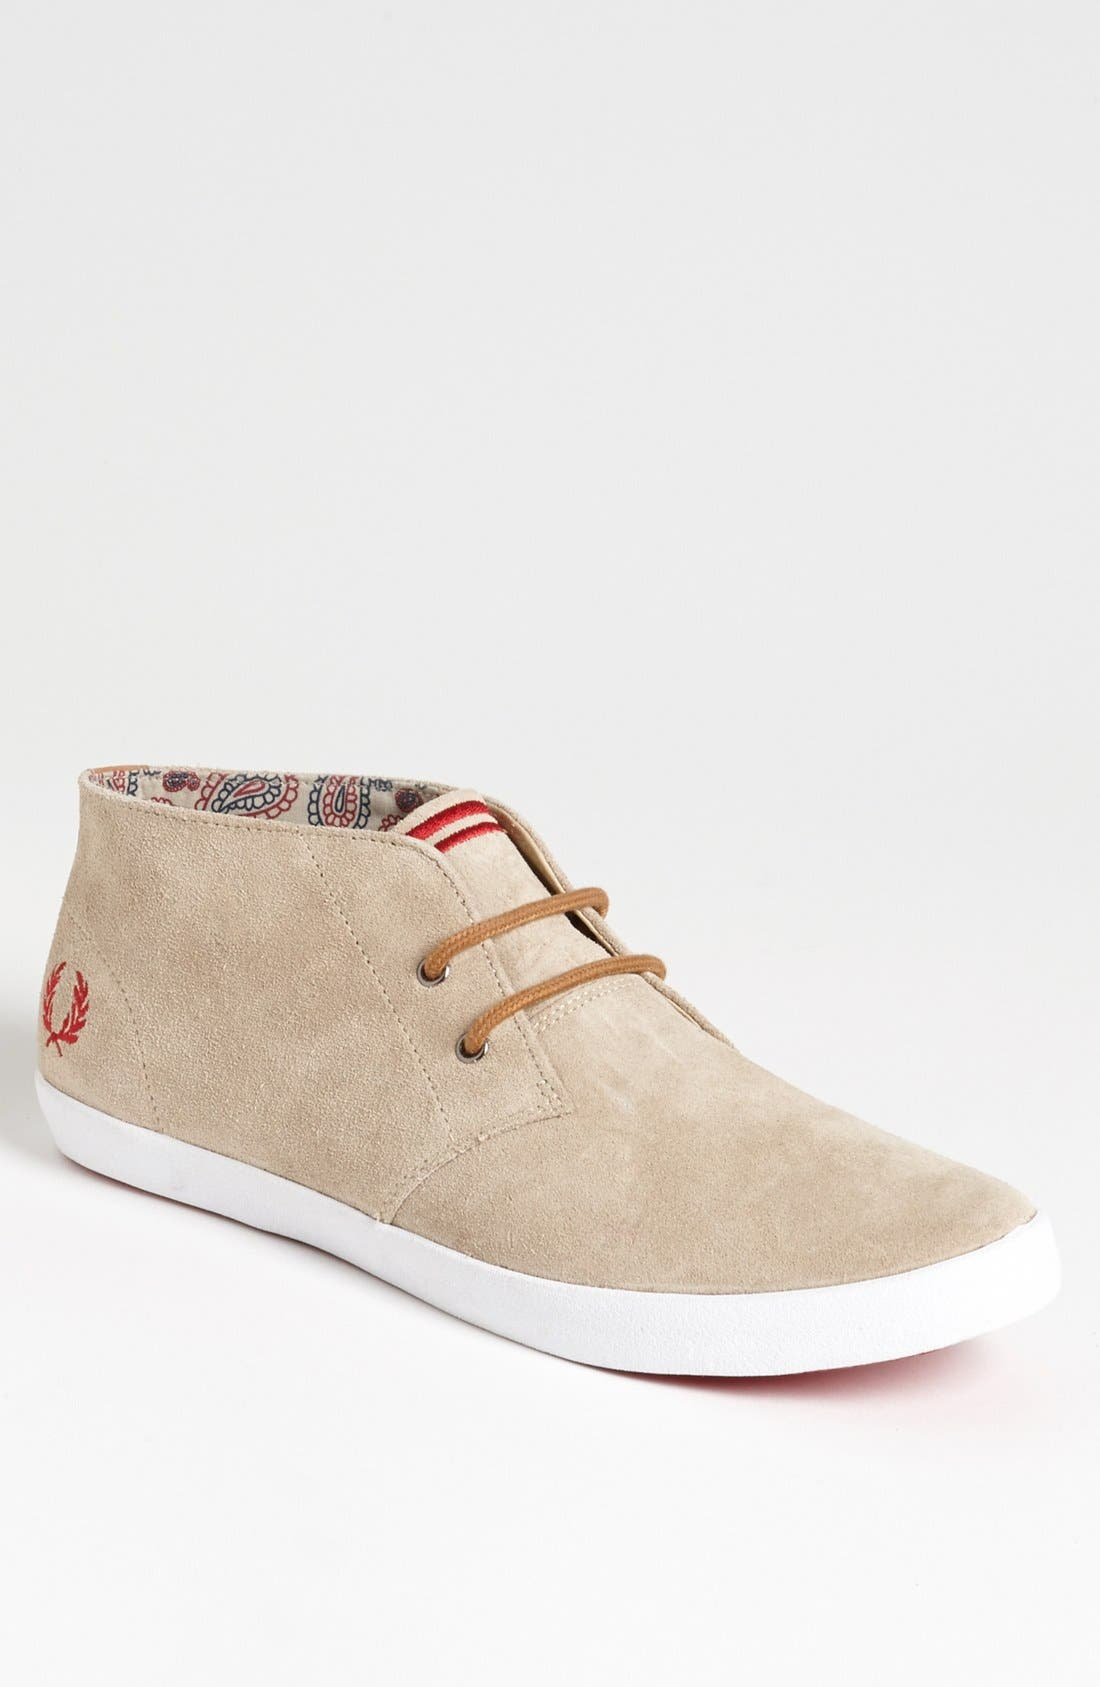 Alternate Image 1 Selected - Fred Perry 'Byron' Chukka Boot